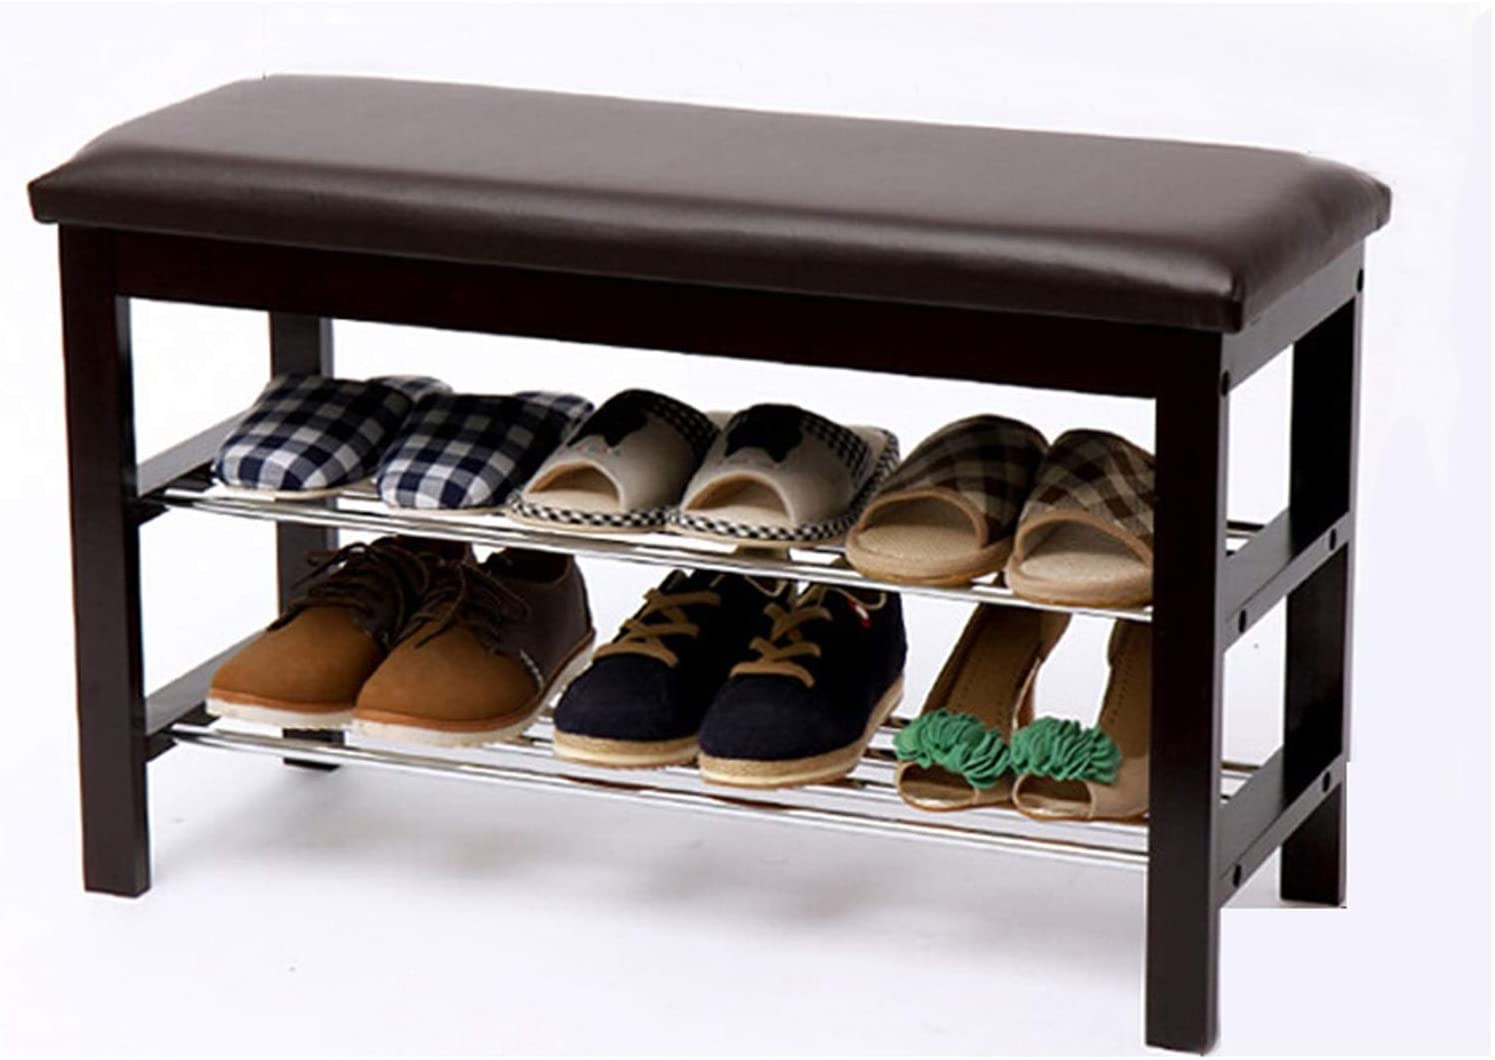 Shoe Rack Large special price !! Shelf Wooden Shoes with Fort Worth Mall Bench Racks Leather Cushi